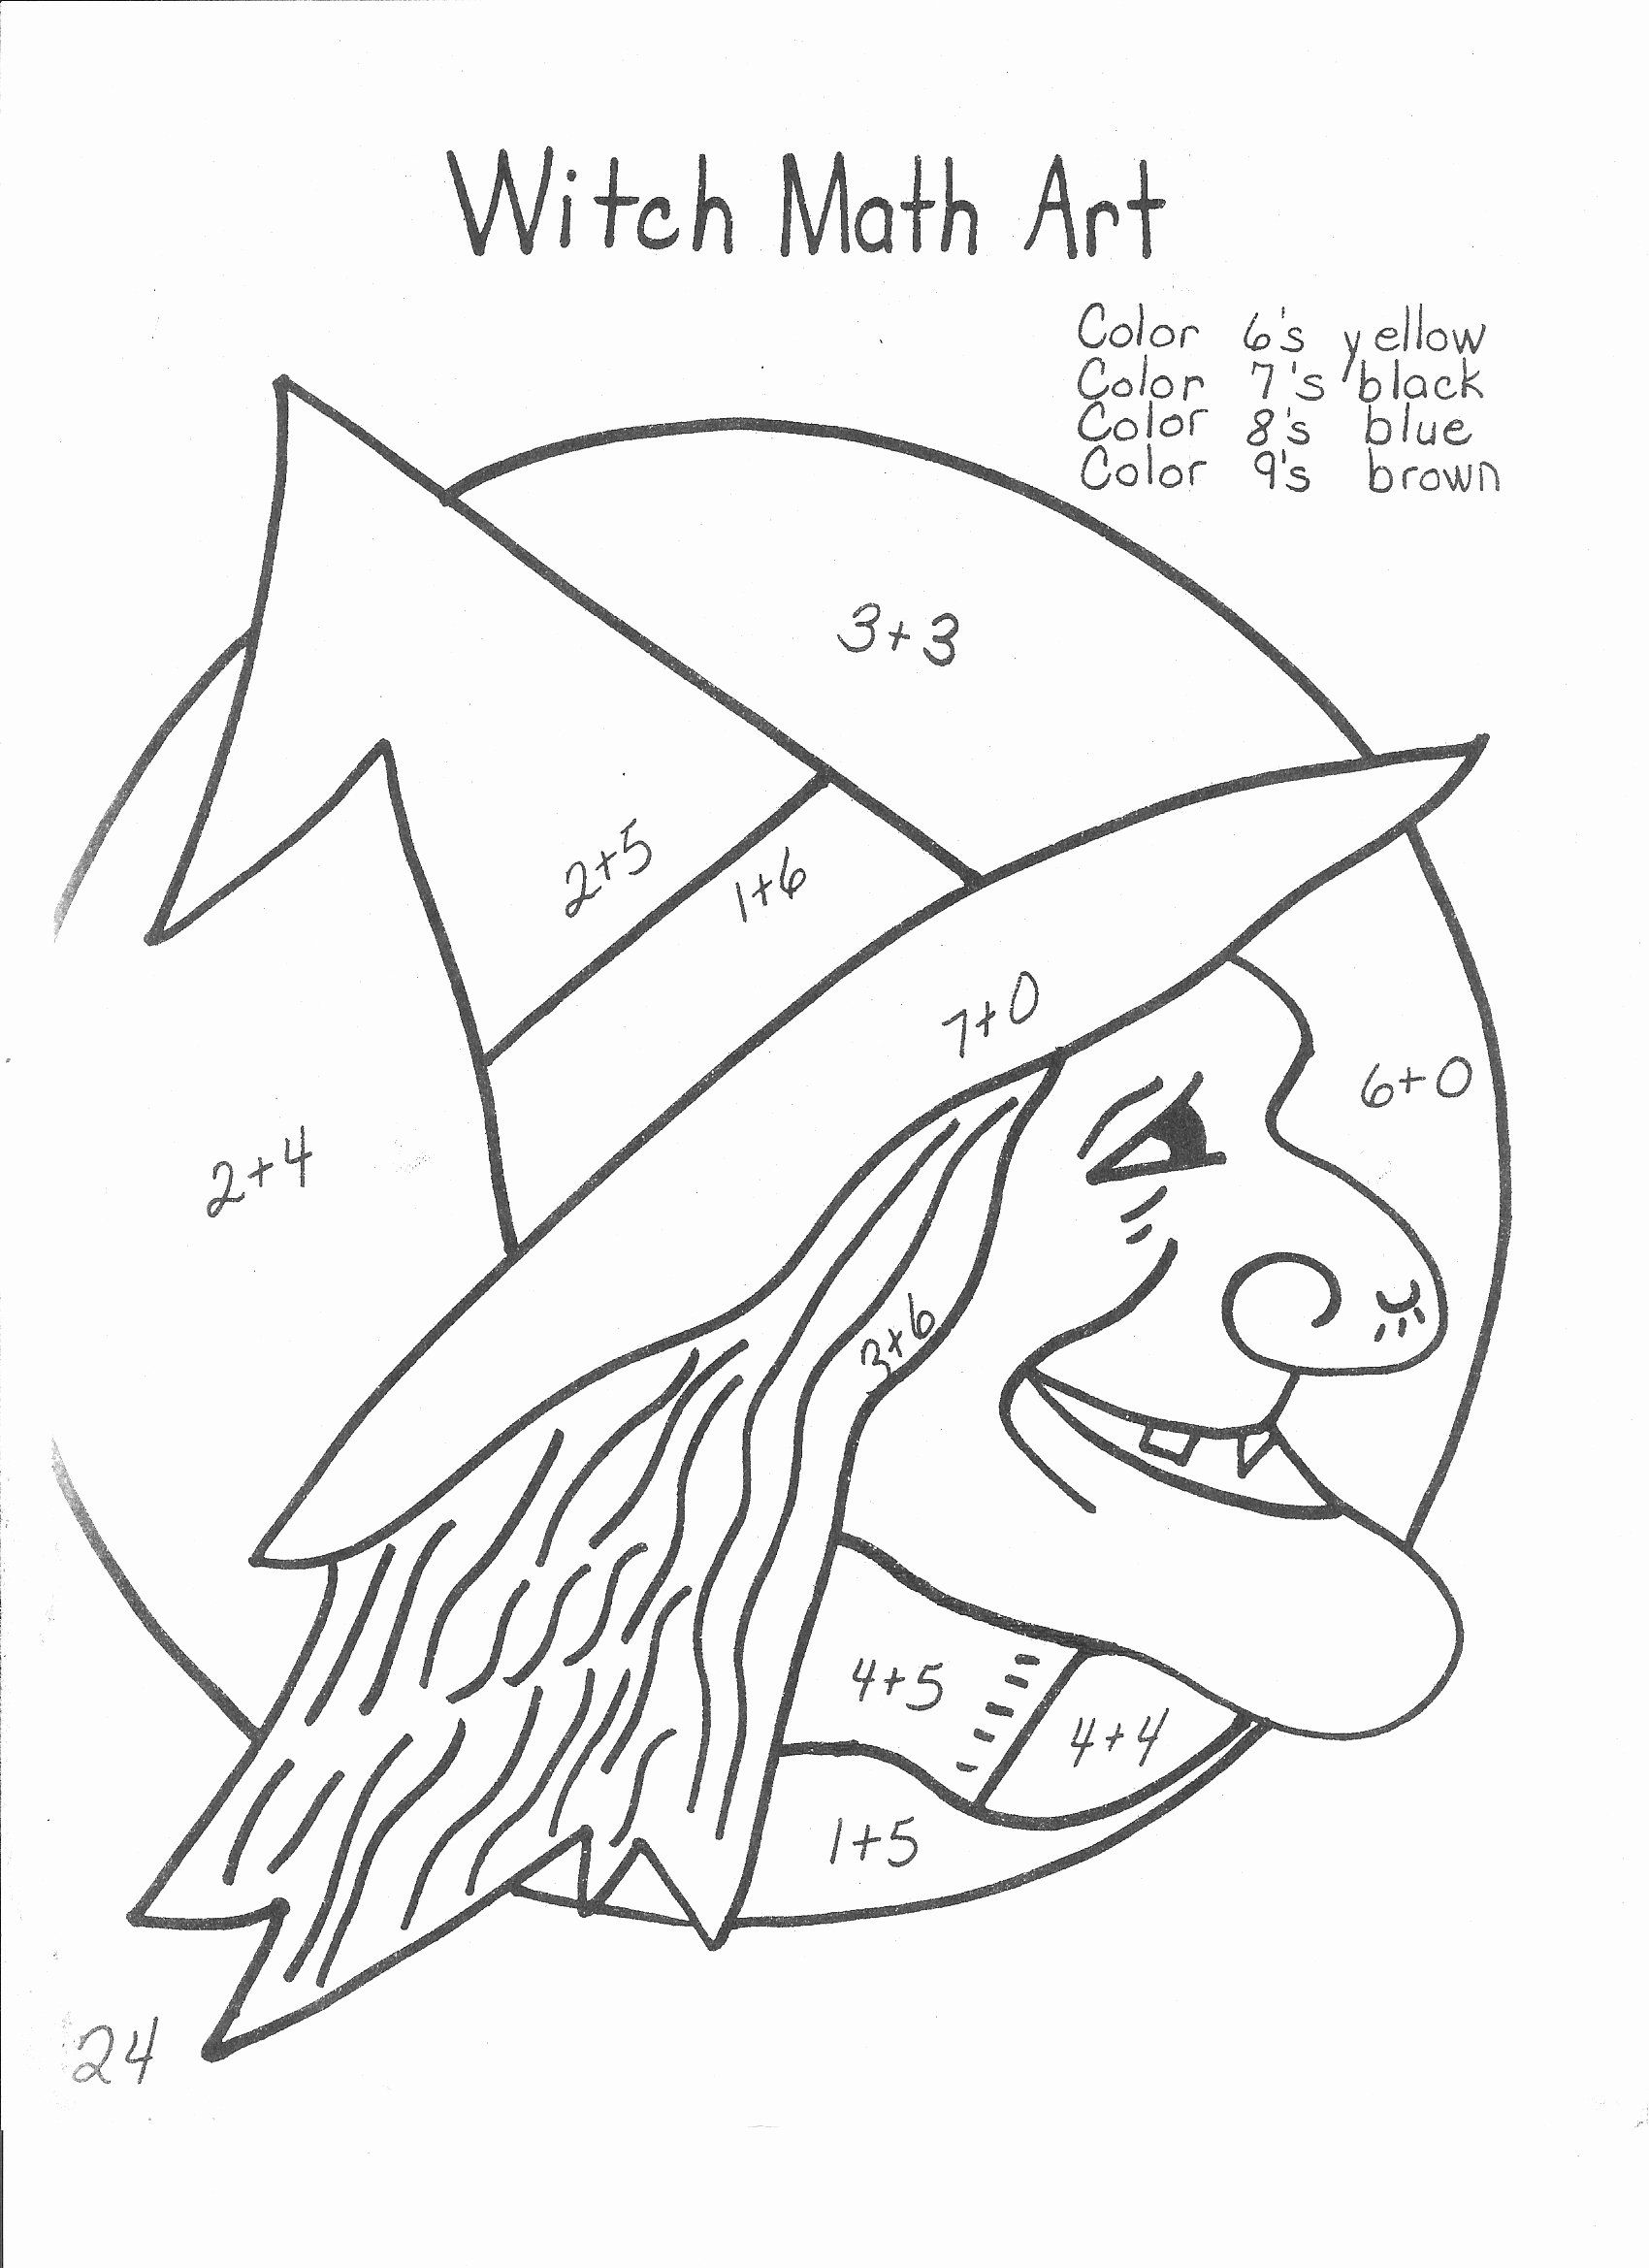 Number Two Coloring Sheet Lovely Coloring Awesome Coloring Pages for 7th  Graders Image in 2020   Halloween math worksheets [ 2338 x 1700 Pixel ]